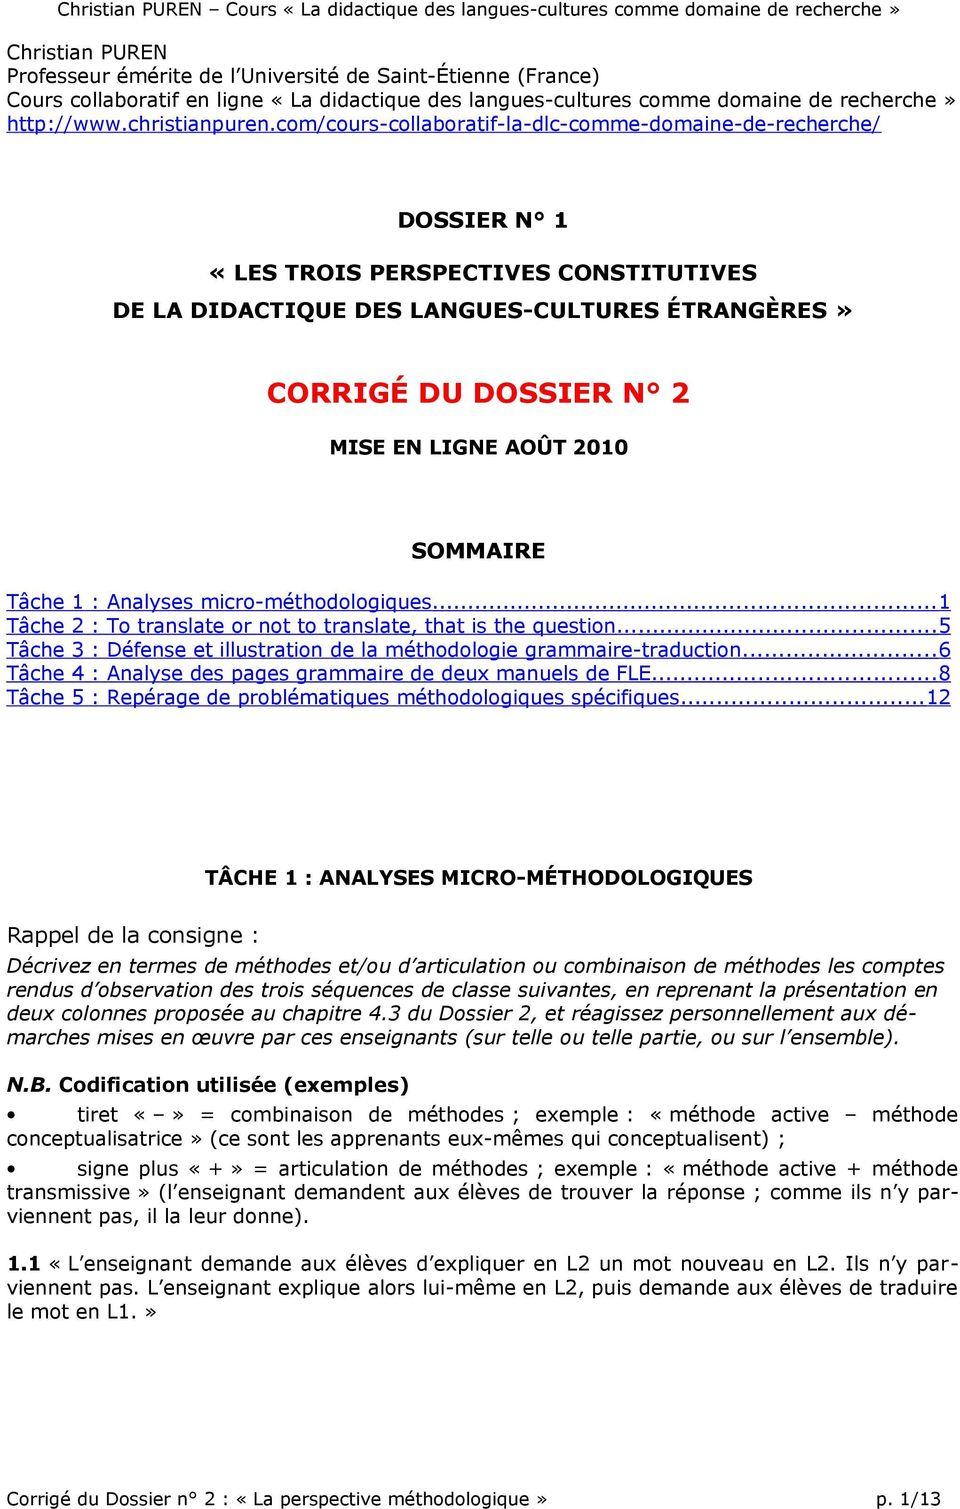 2010 SOMMAIRE Tâche 1 : Analyses micro-méthodologiques...1 Tâche 2 : To translate or not to translate, that is the question......5 Tâche 3 : Défense et illustration de la méthodologie grammaire-traduction.